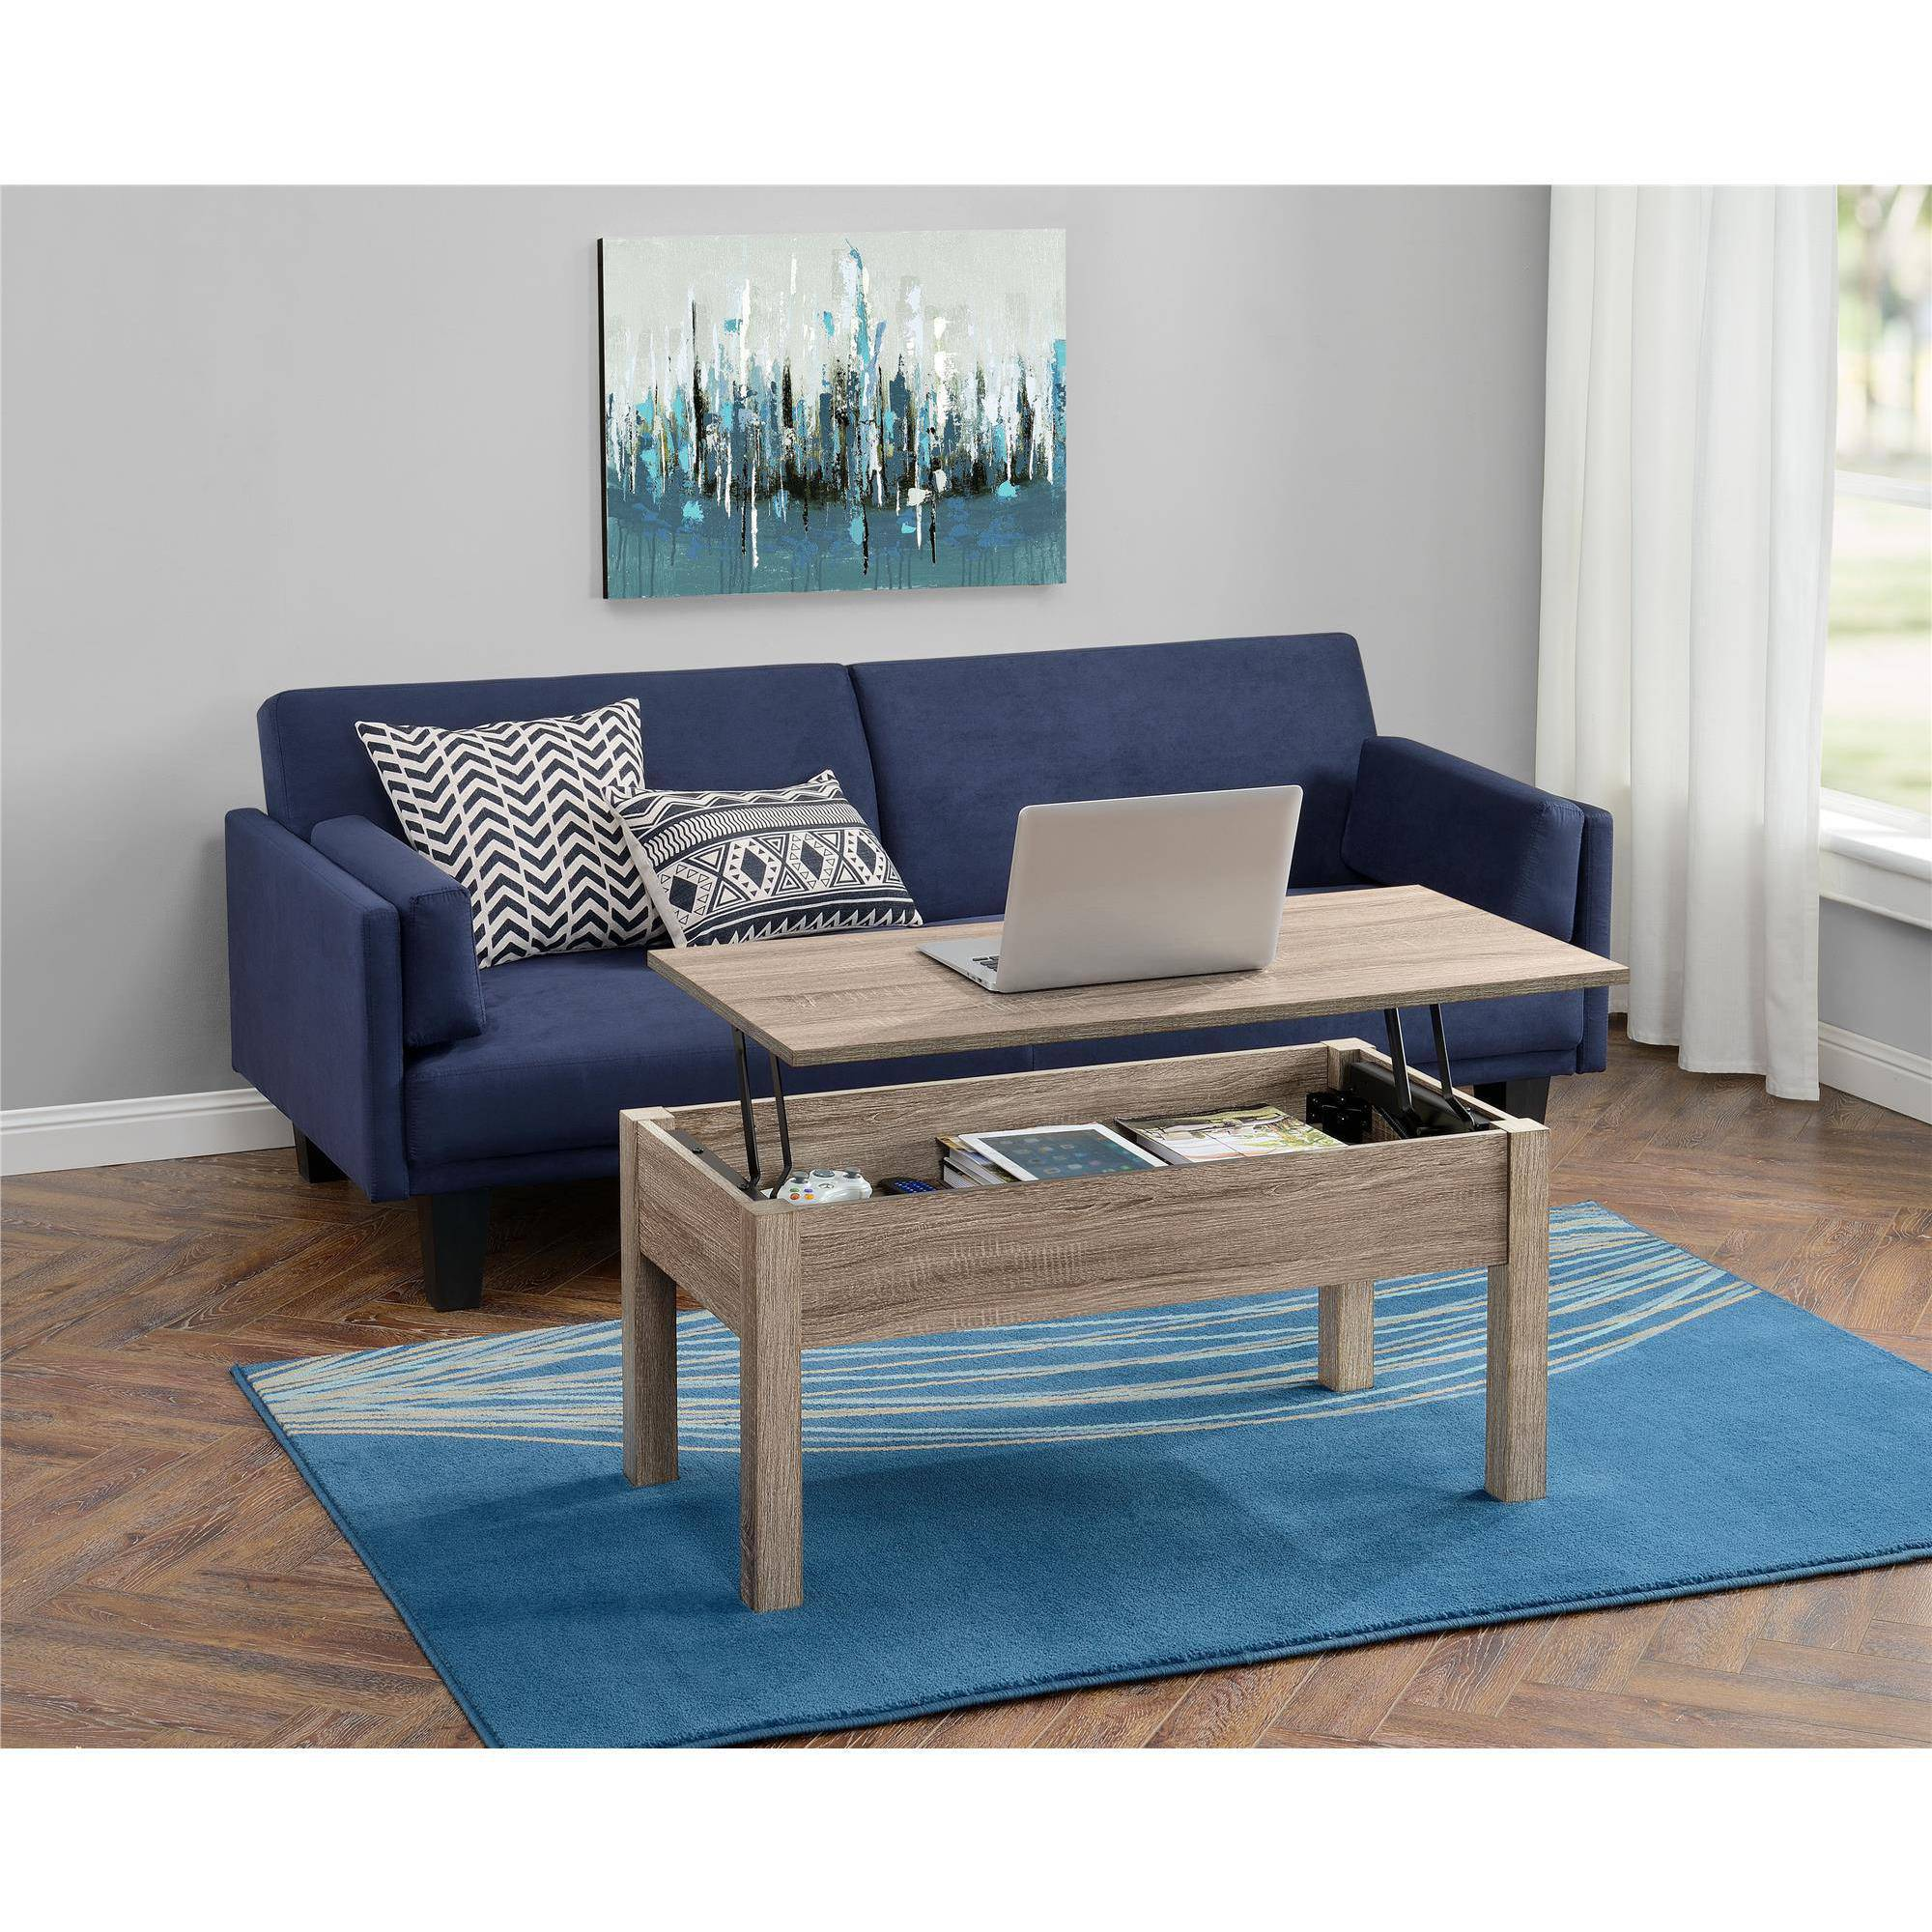 Mainstays Lift Top Coffee Table, Multiple Colors   Walmart.com